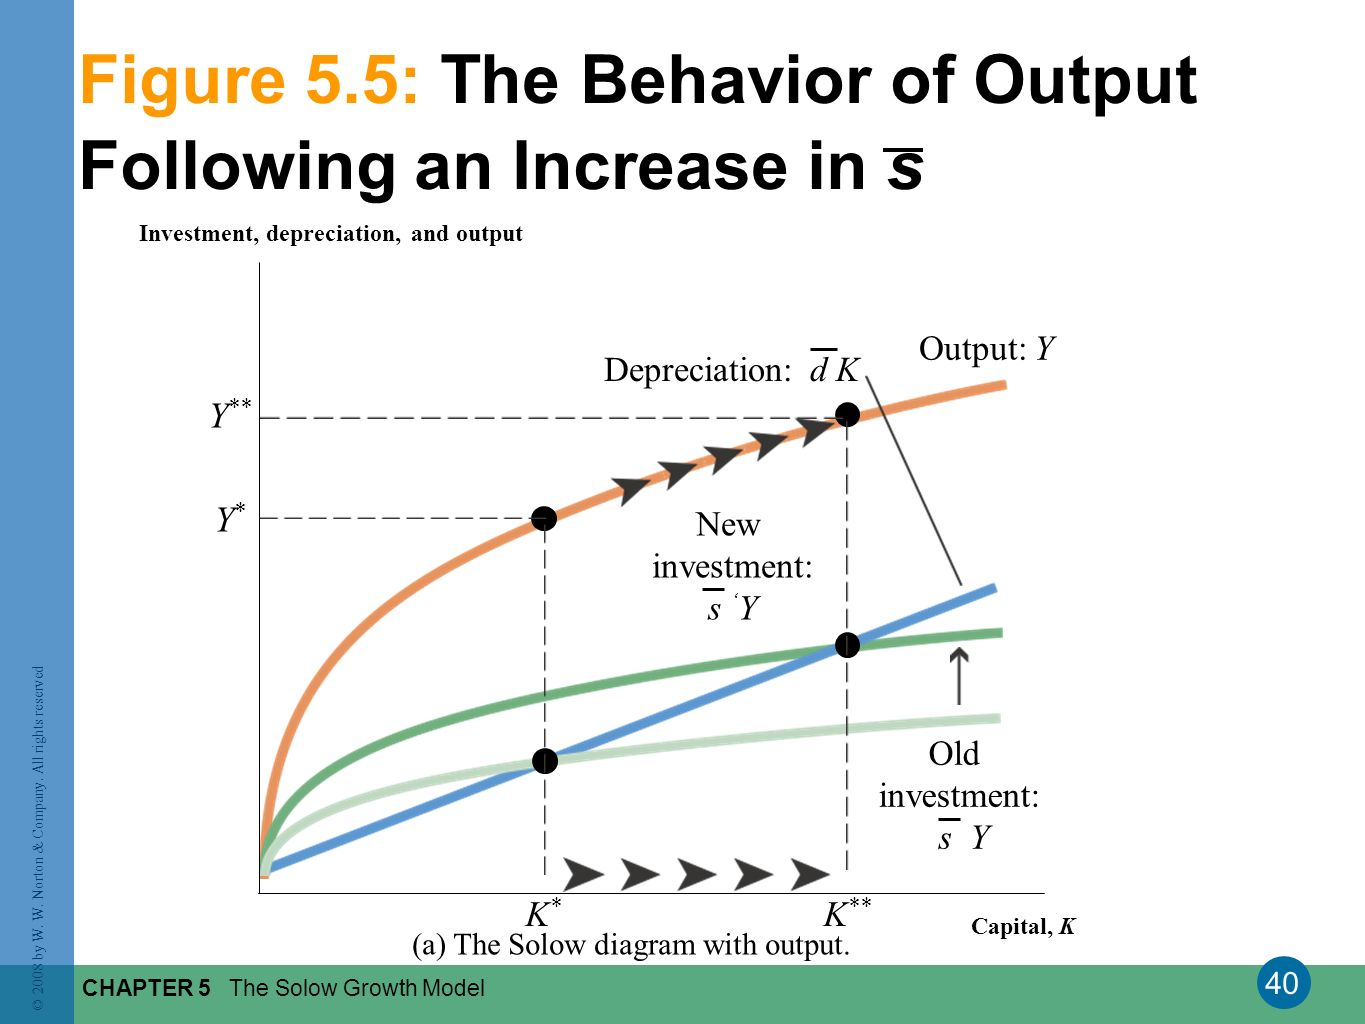 40 © 2008 by W. W. Norton & Company. All rights reserved CHAPTER 5 The Solow Growth Model Figure 5.5: The Behavior of Output Following an Increase in